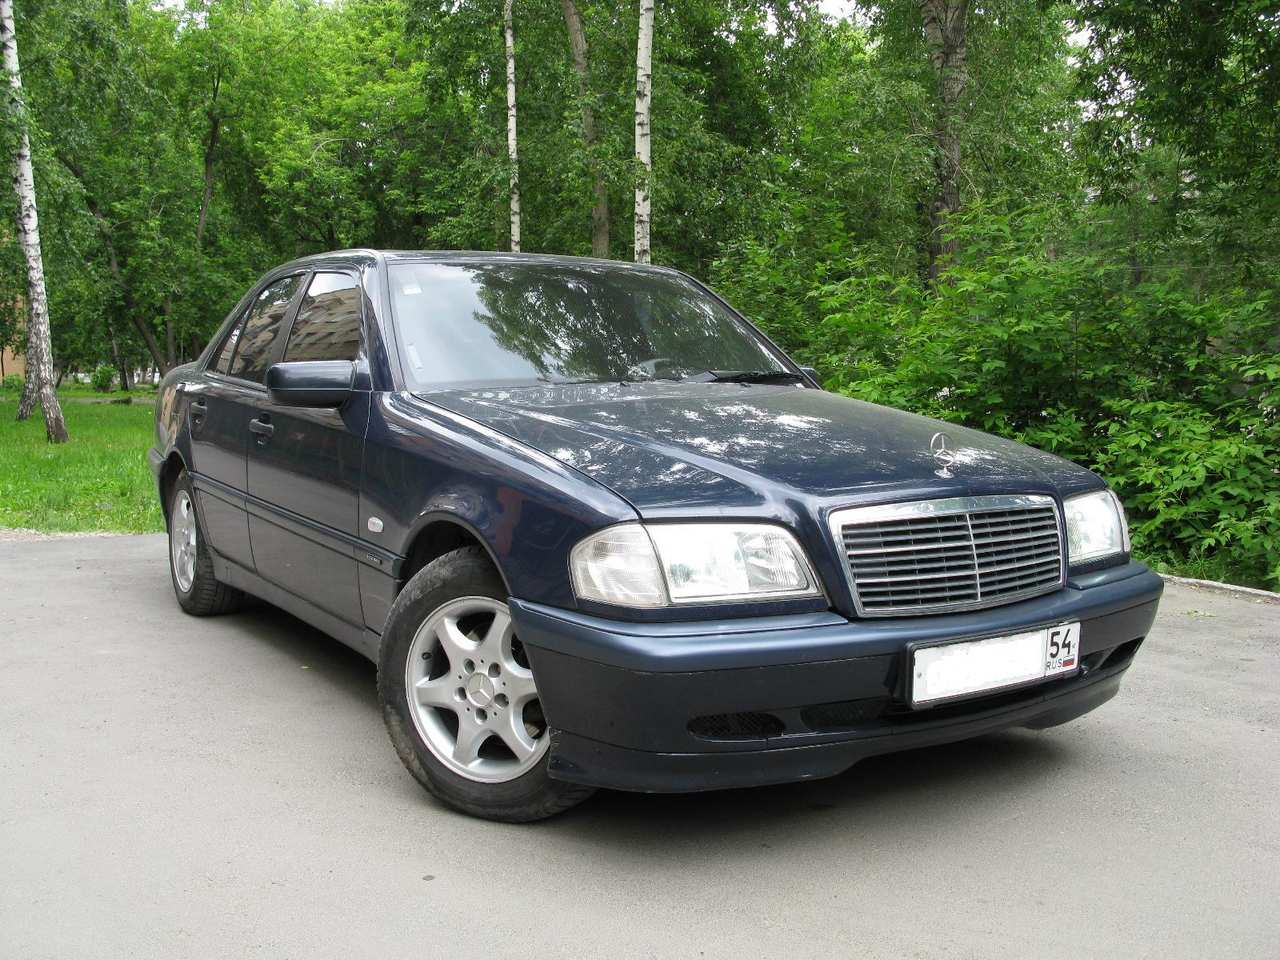 1998 Mercedes Benz C-class Photos, 2.0, Gasoline, FR or RR, Manual ...